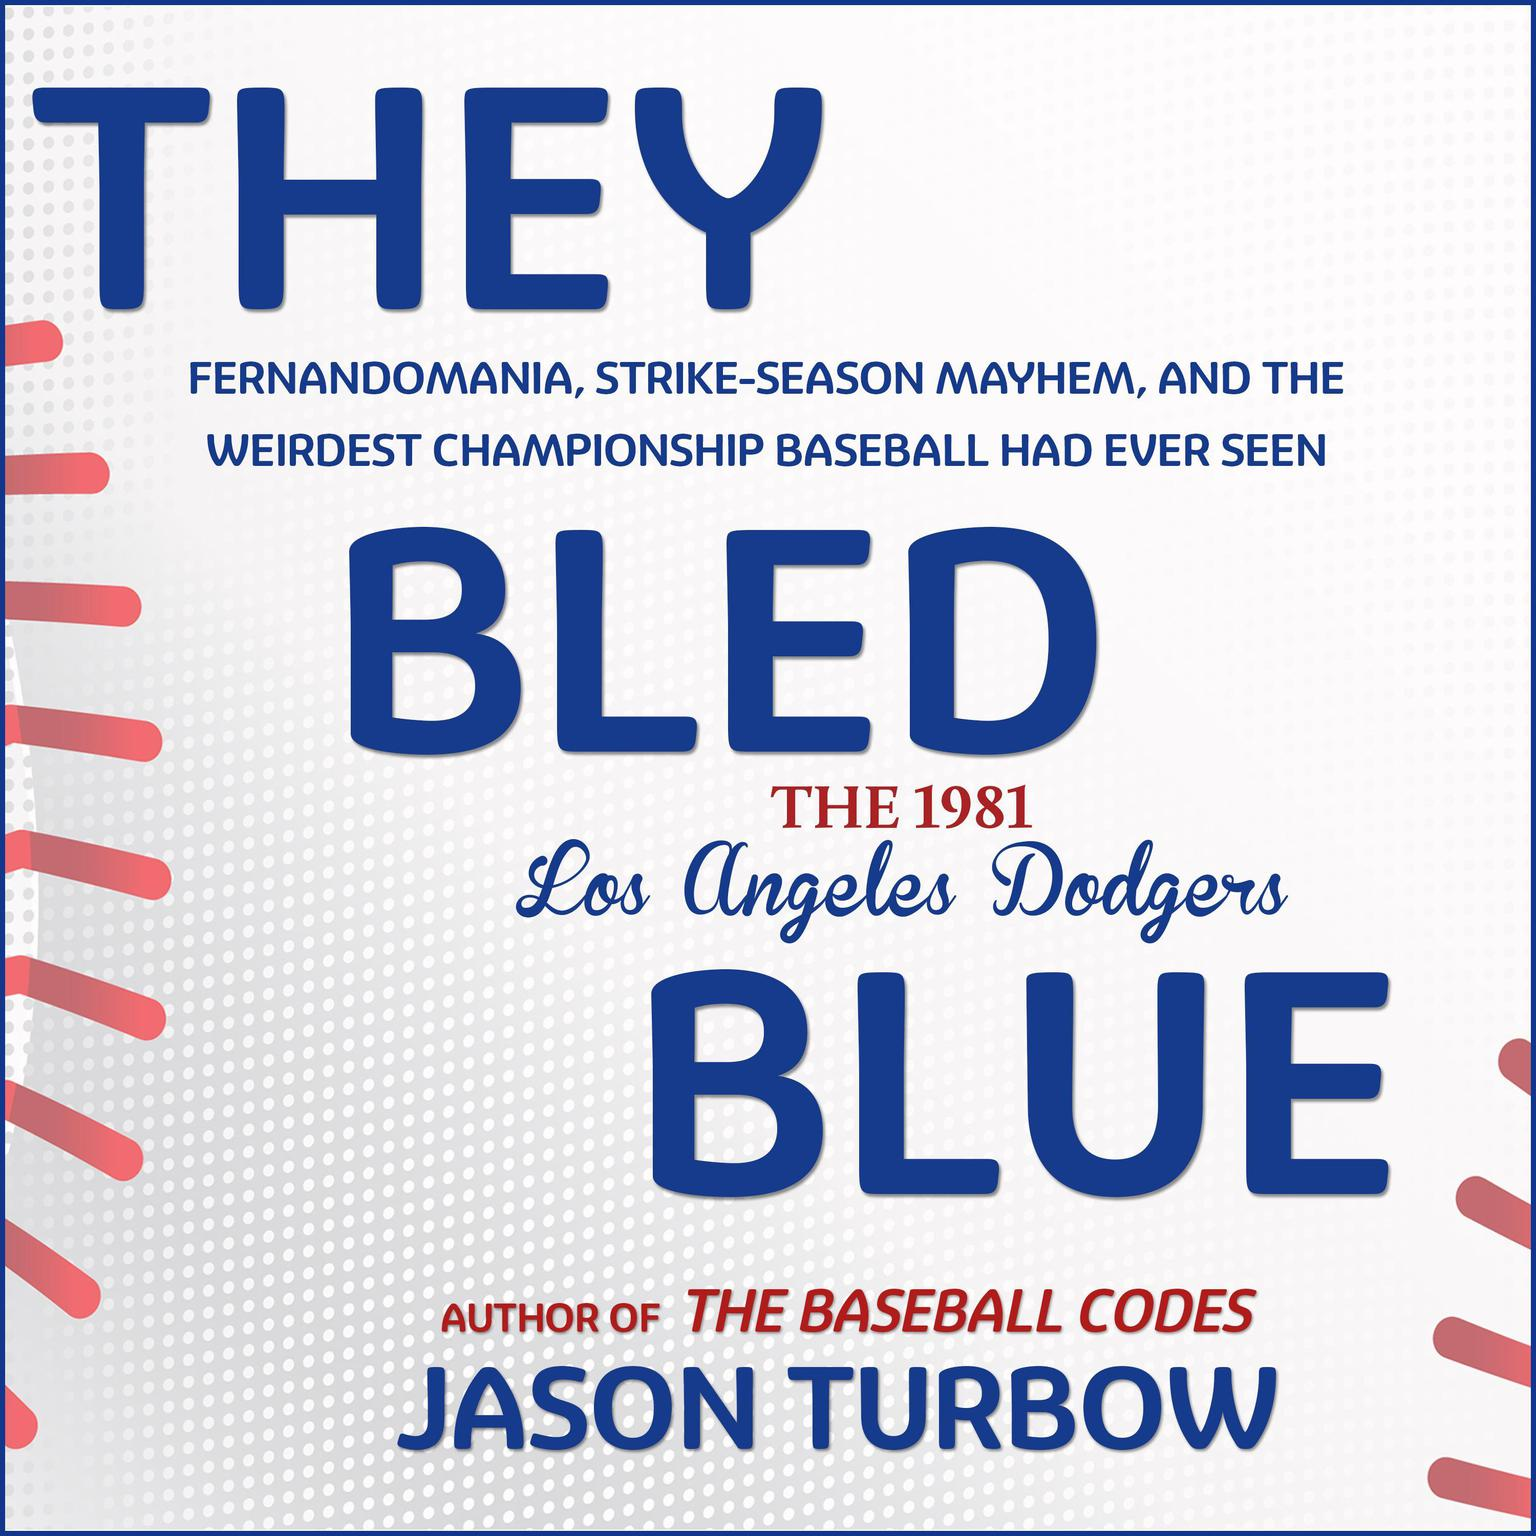 image about Dodger Schedule Printable called They Bled Blue: Fernandomania, Hit-Time Mayhem, and the Weirdest Championship Baseball Experienced At any time Discovered: The 1981 Los Angeles Dodgers Audiobook